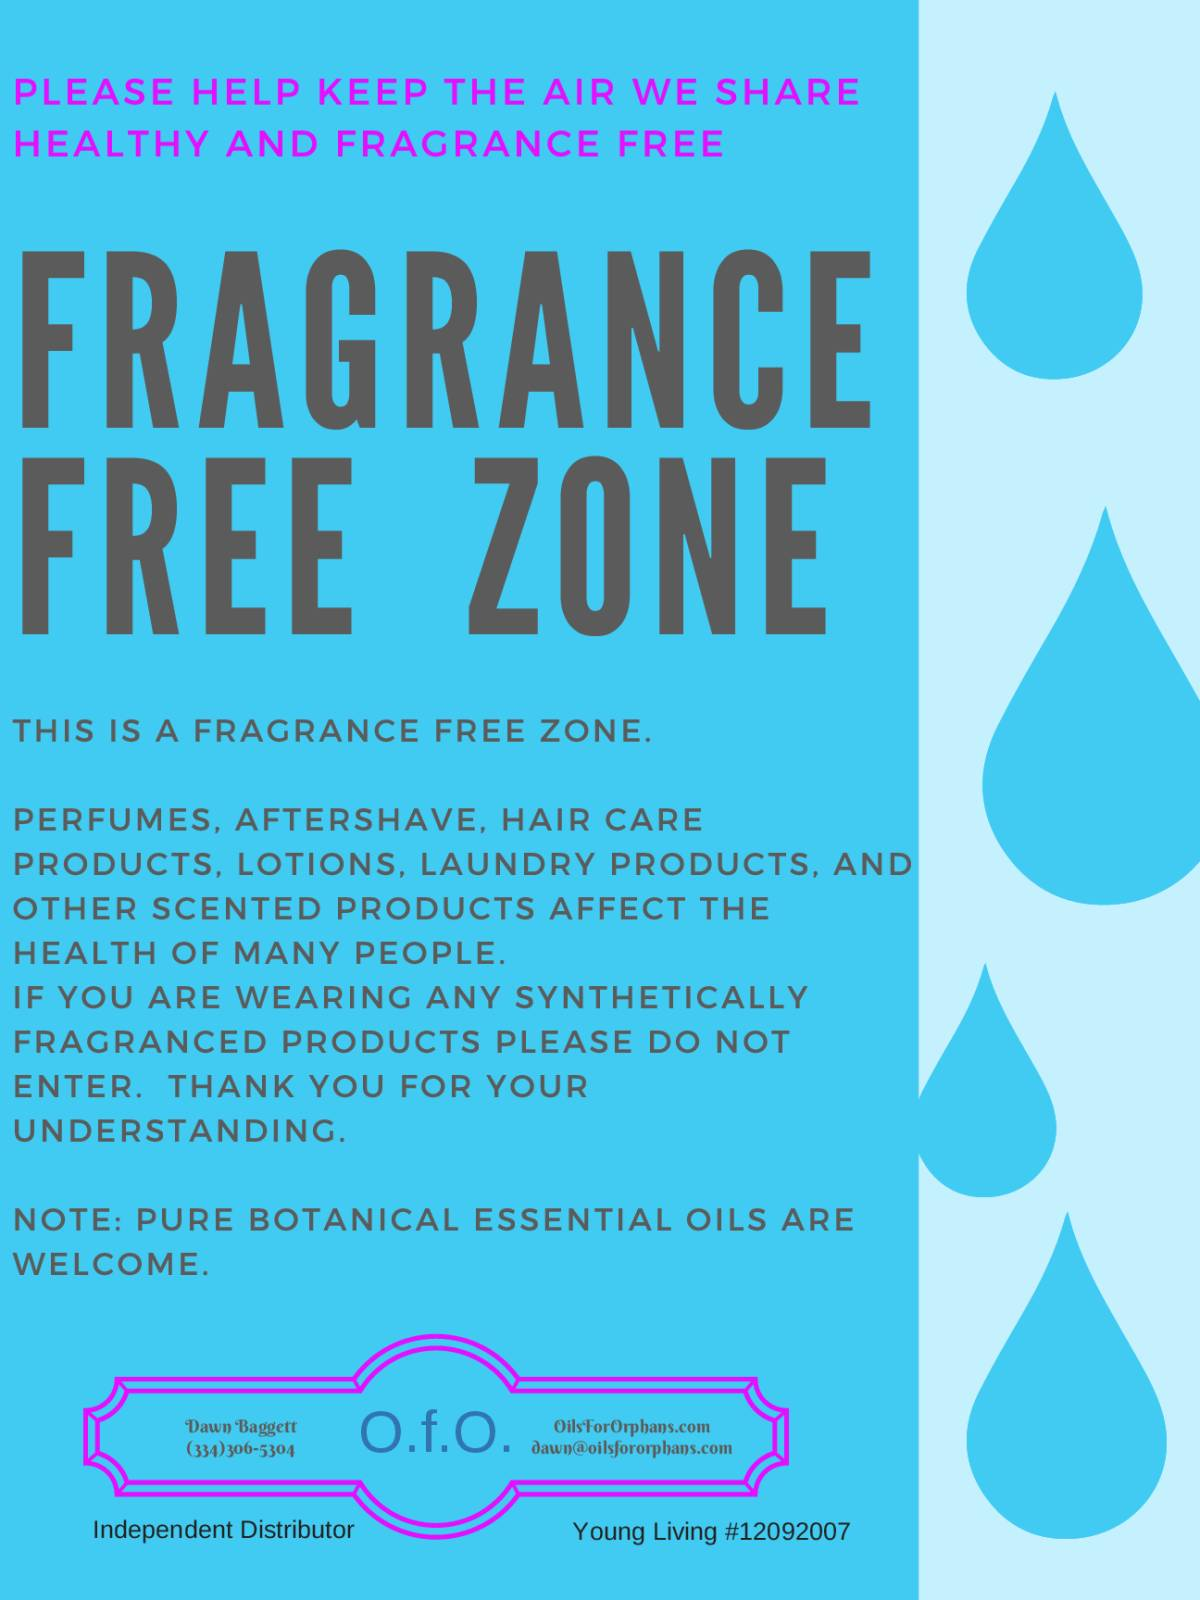 Your Home - A Fragrance-Free Zone